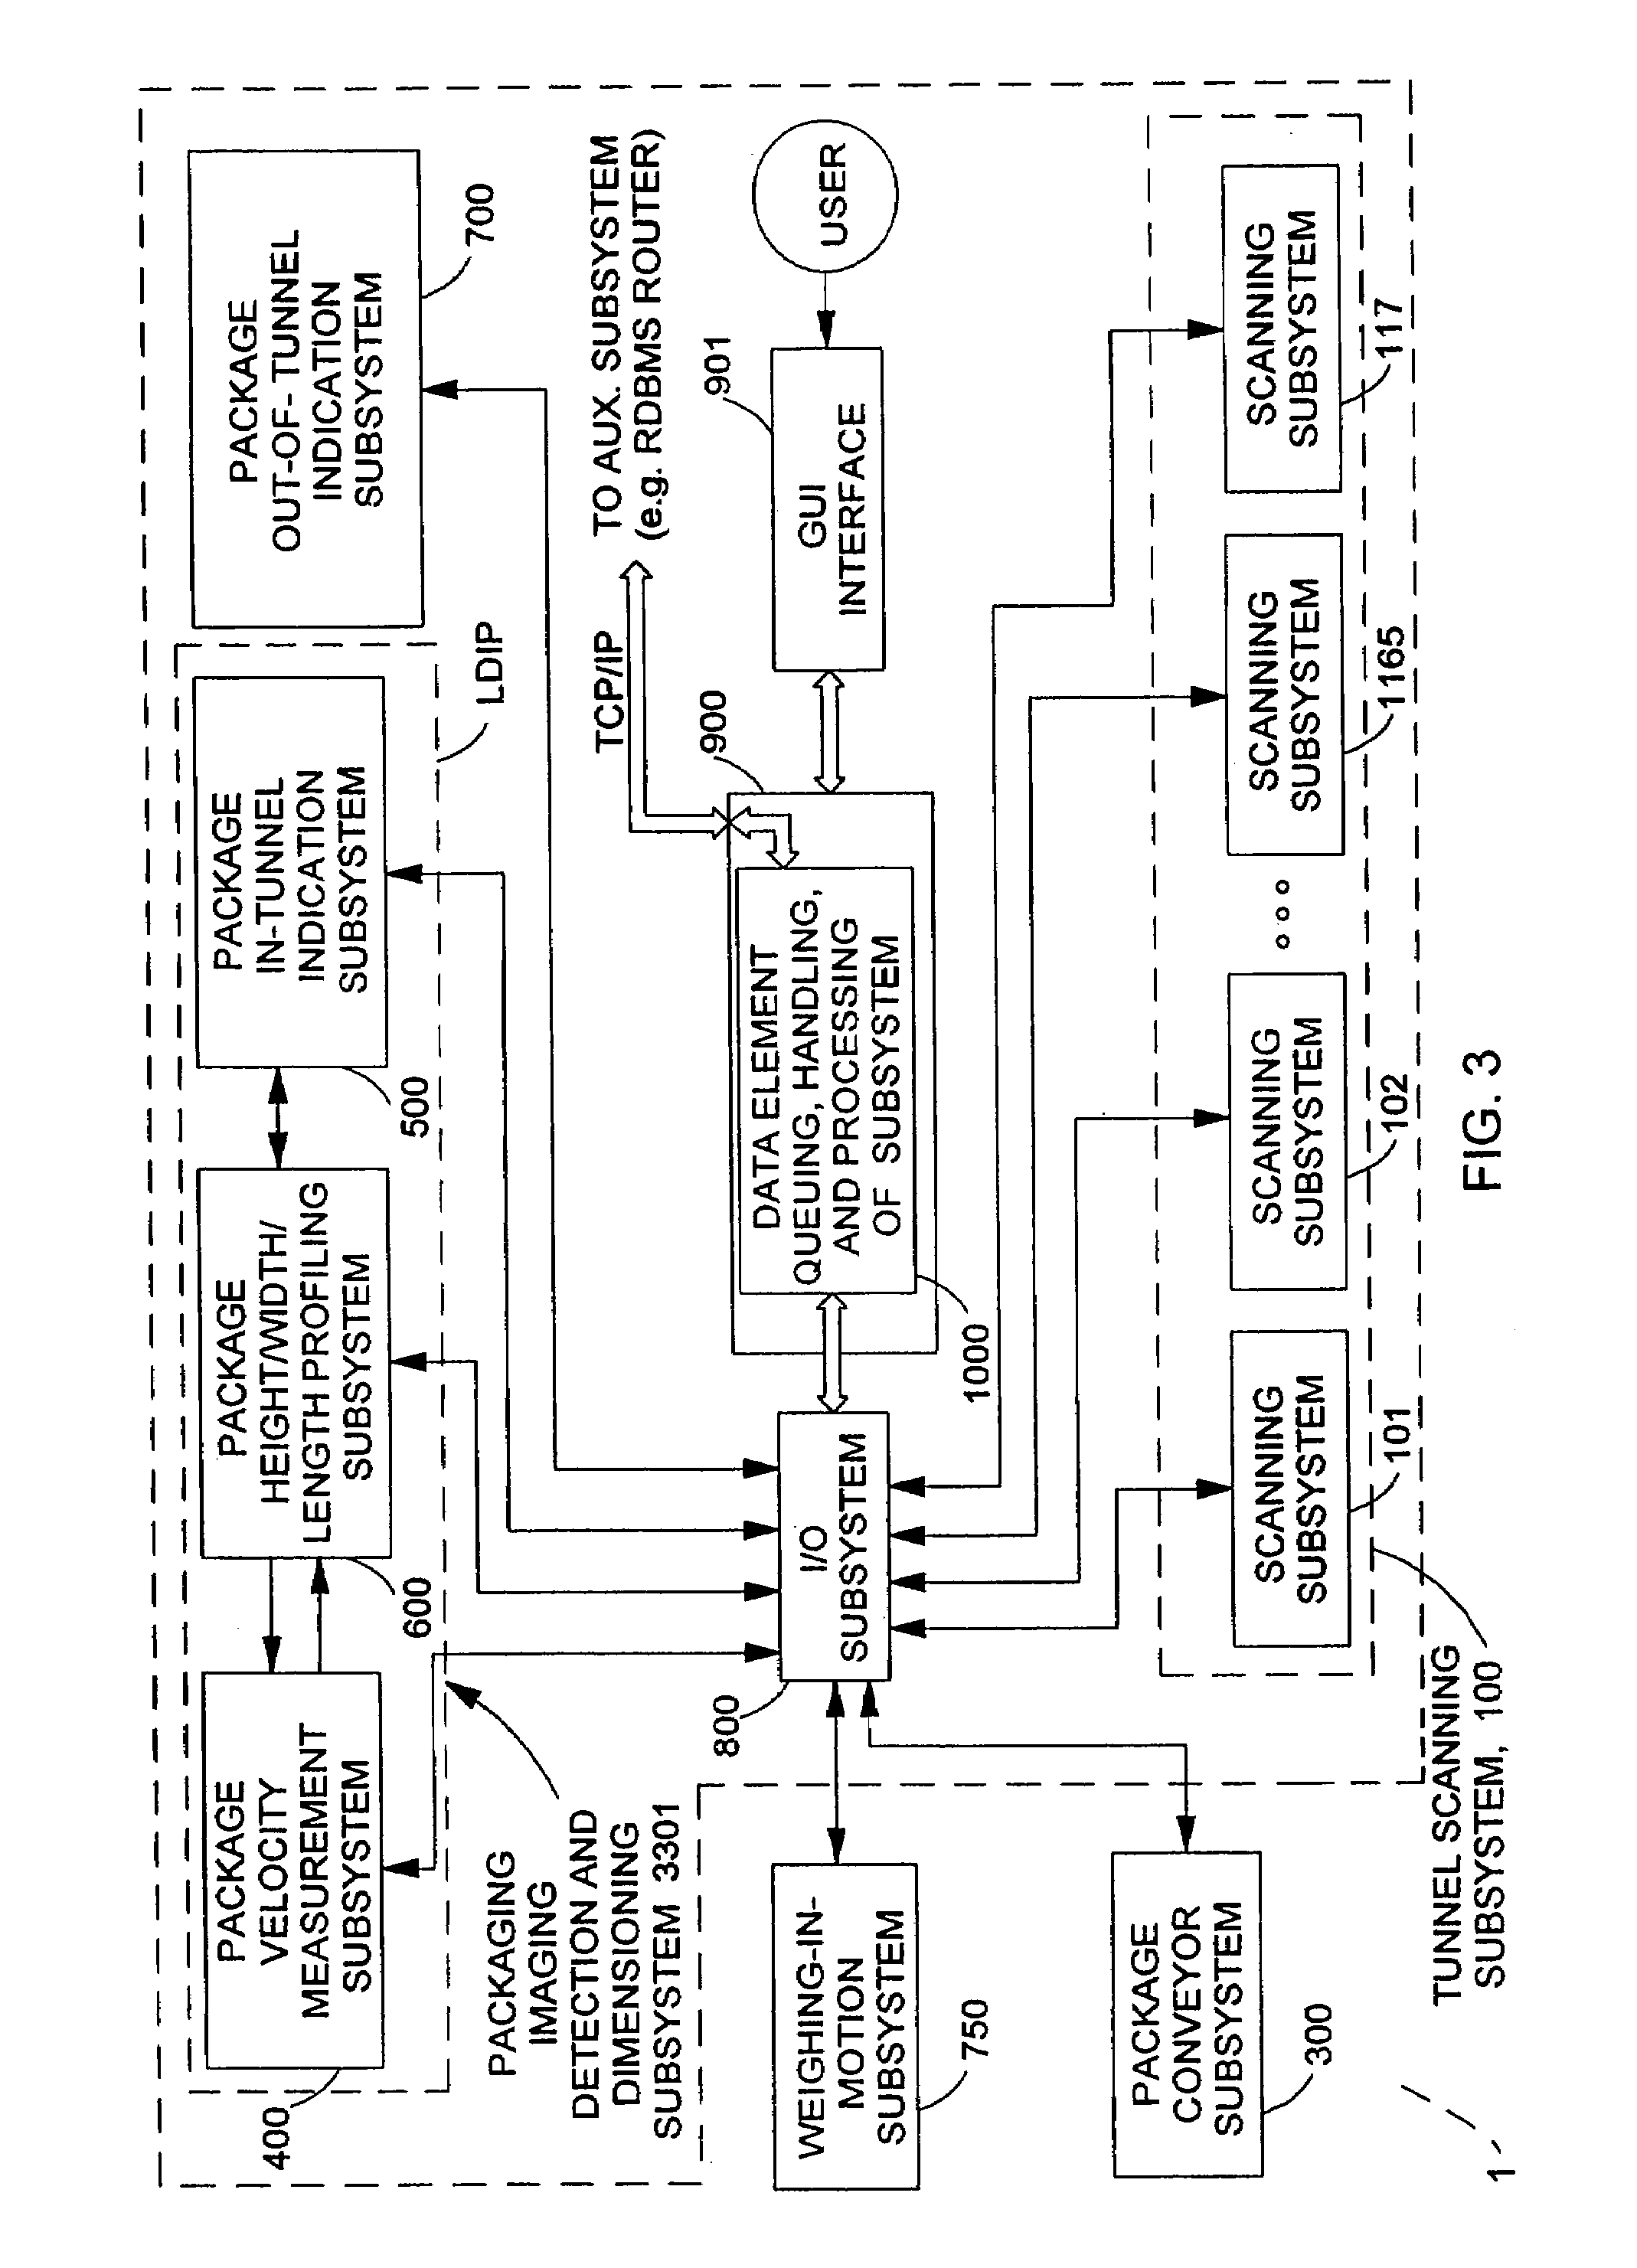 Patent Us 7527205 B2 As Directed In The Diagram Circuit Requires A Couple Of 1uf